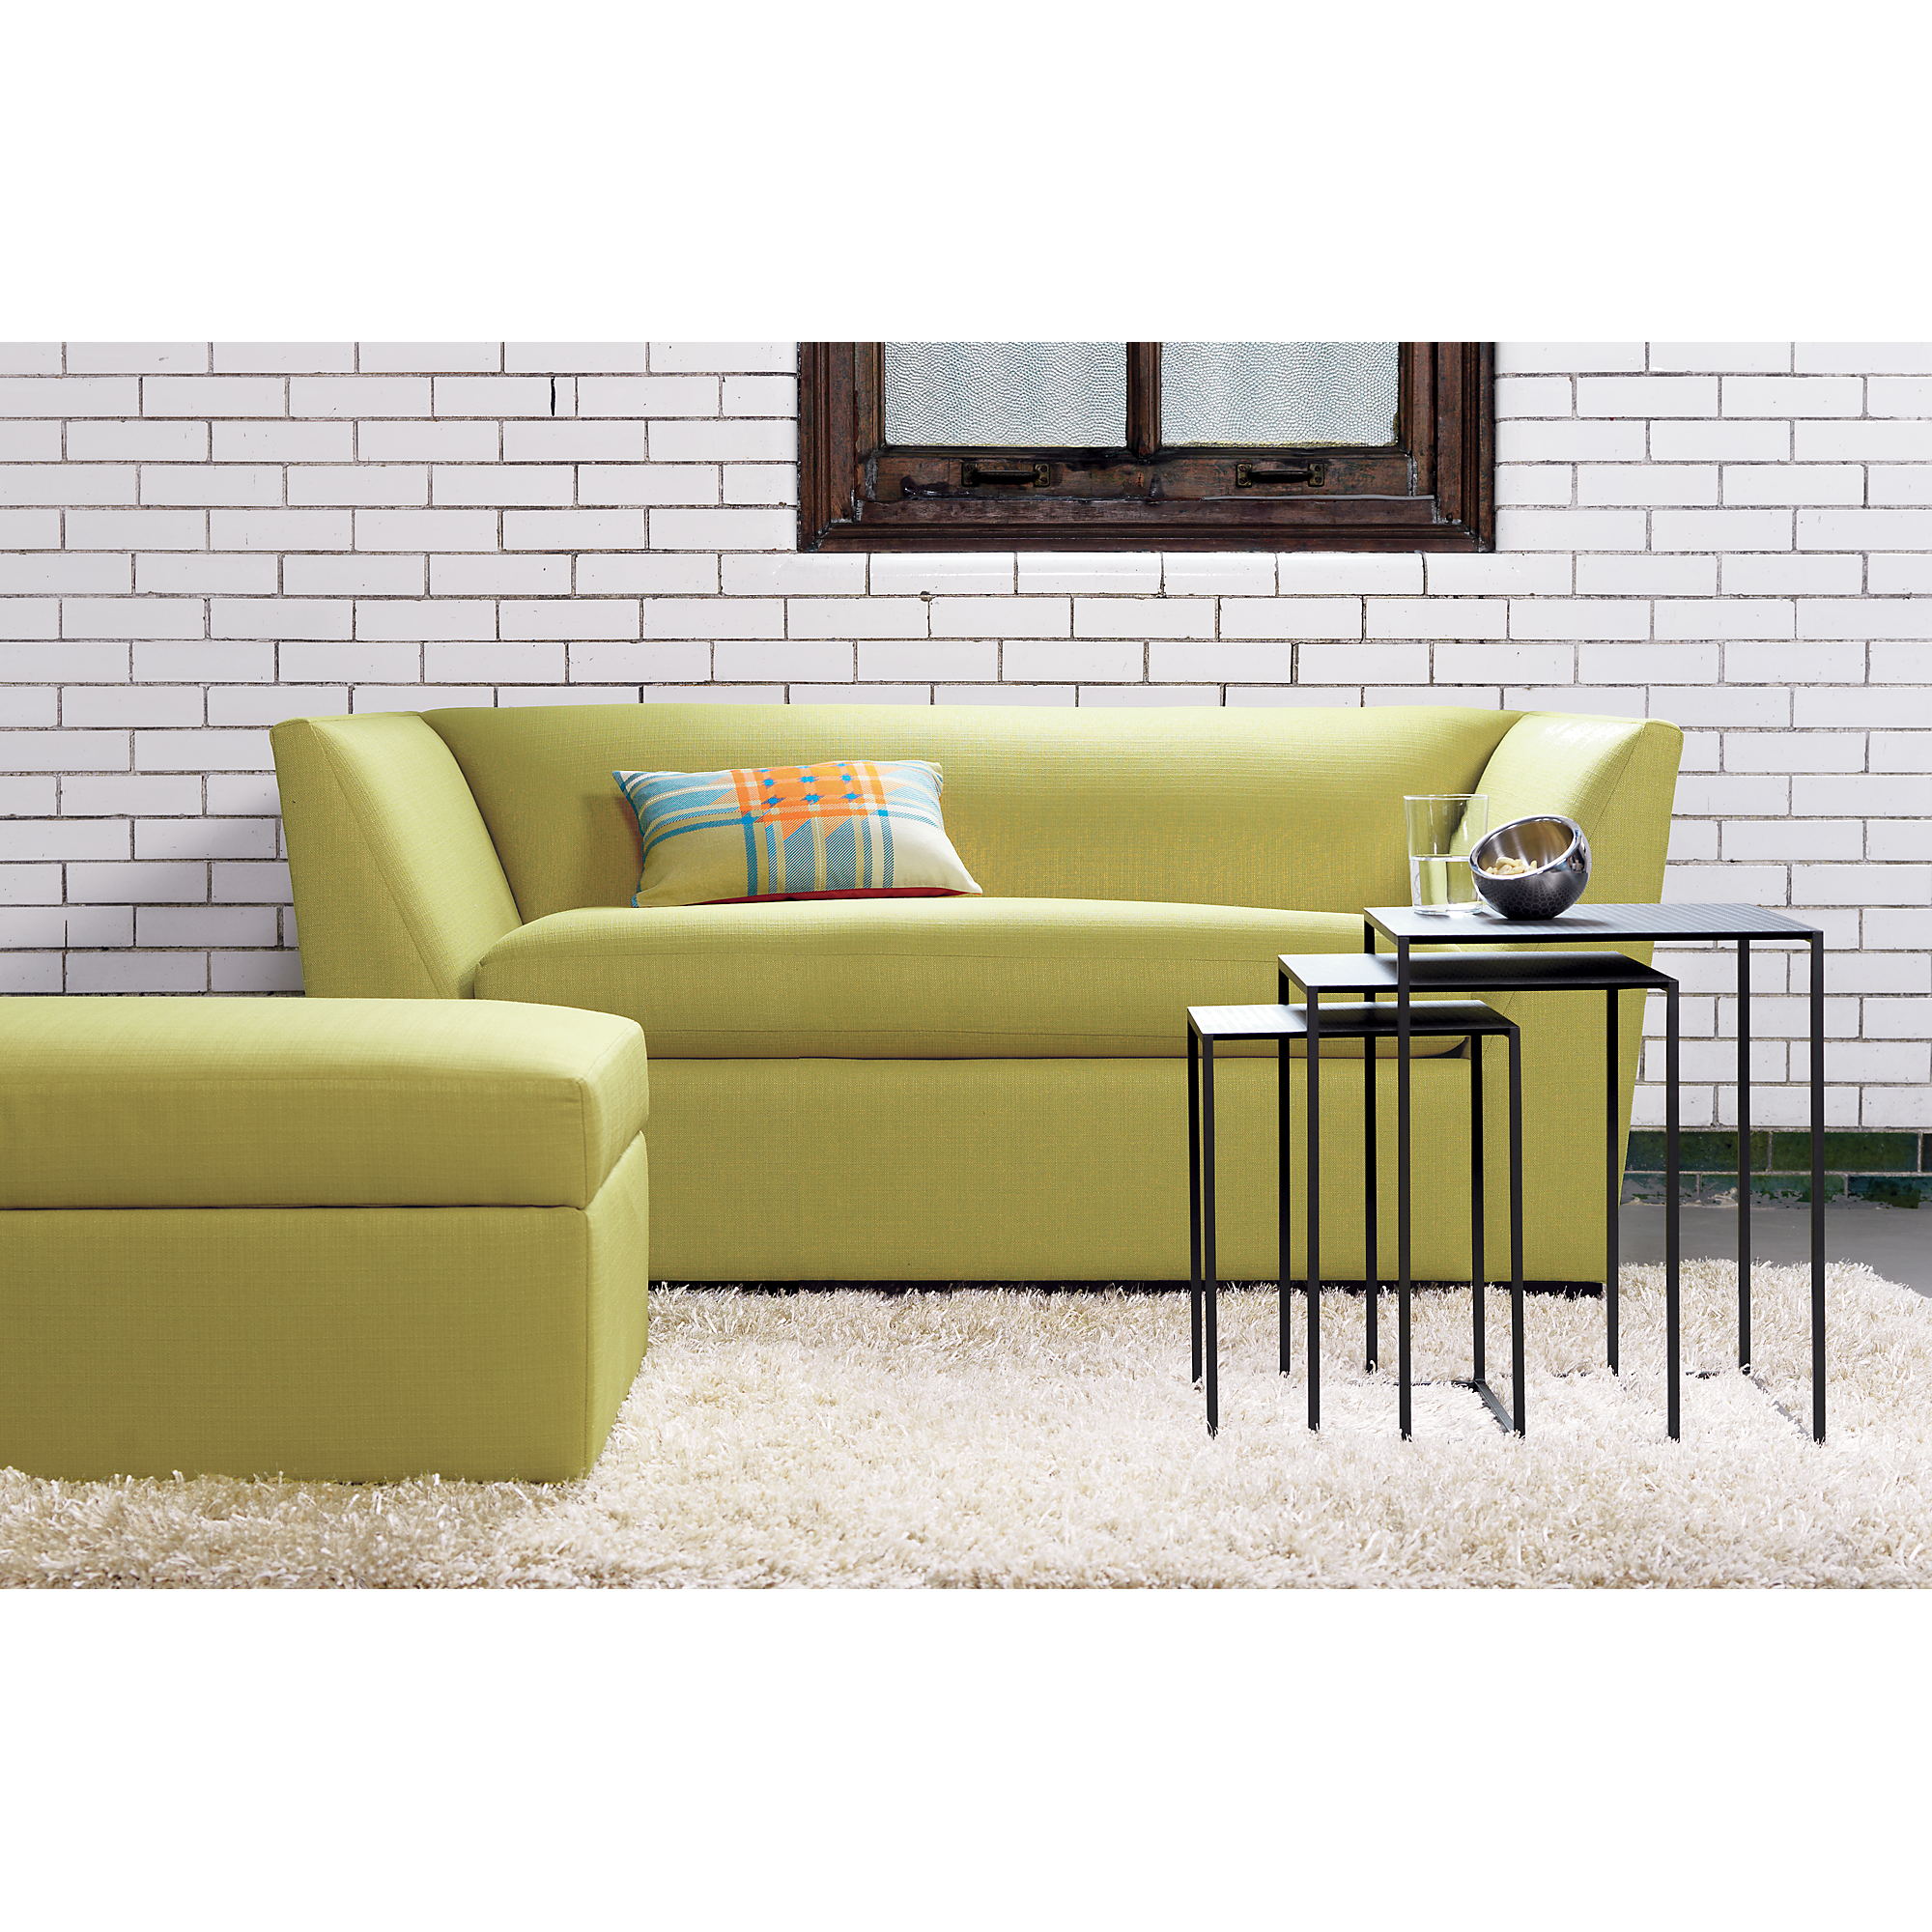 GREAT for a small apartment CB2 Julius Grass Twin Sleeper Sofa